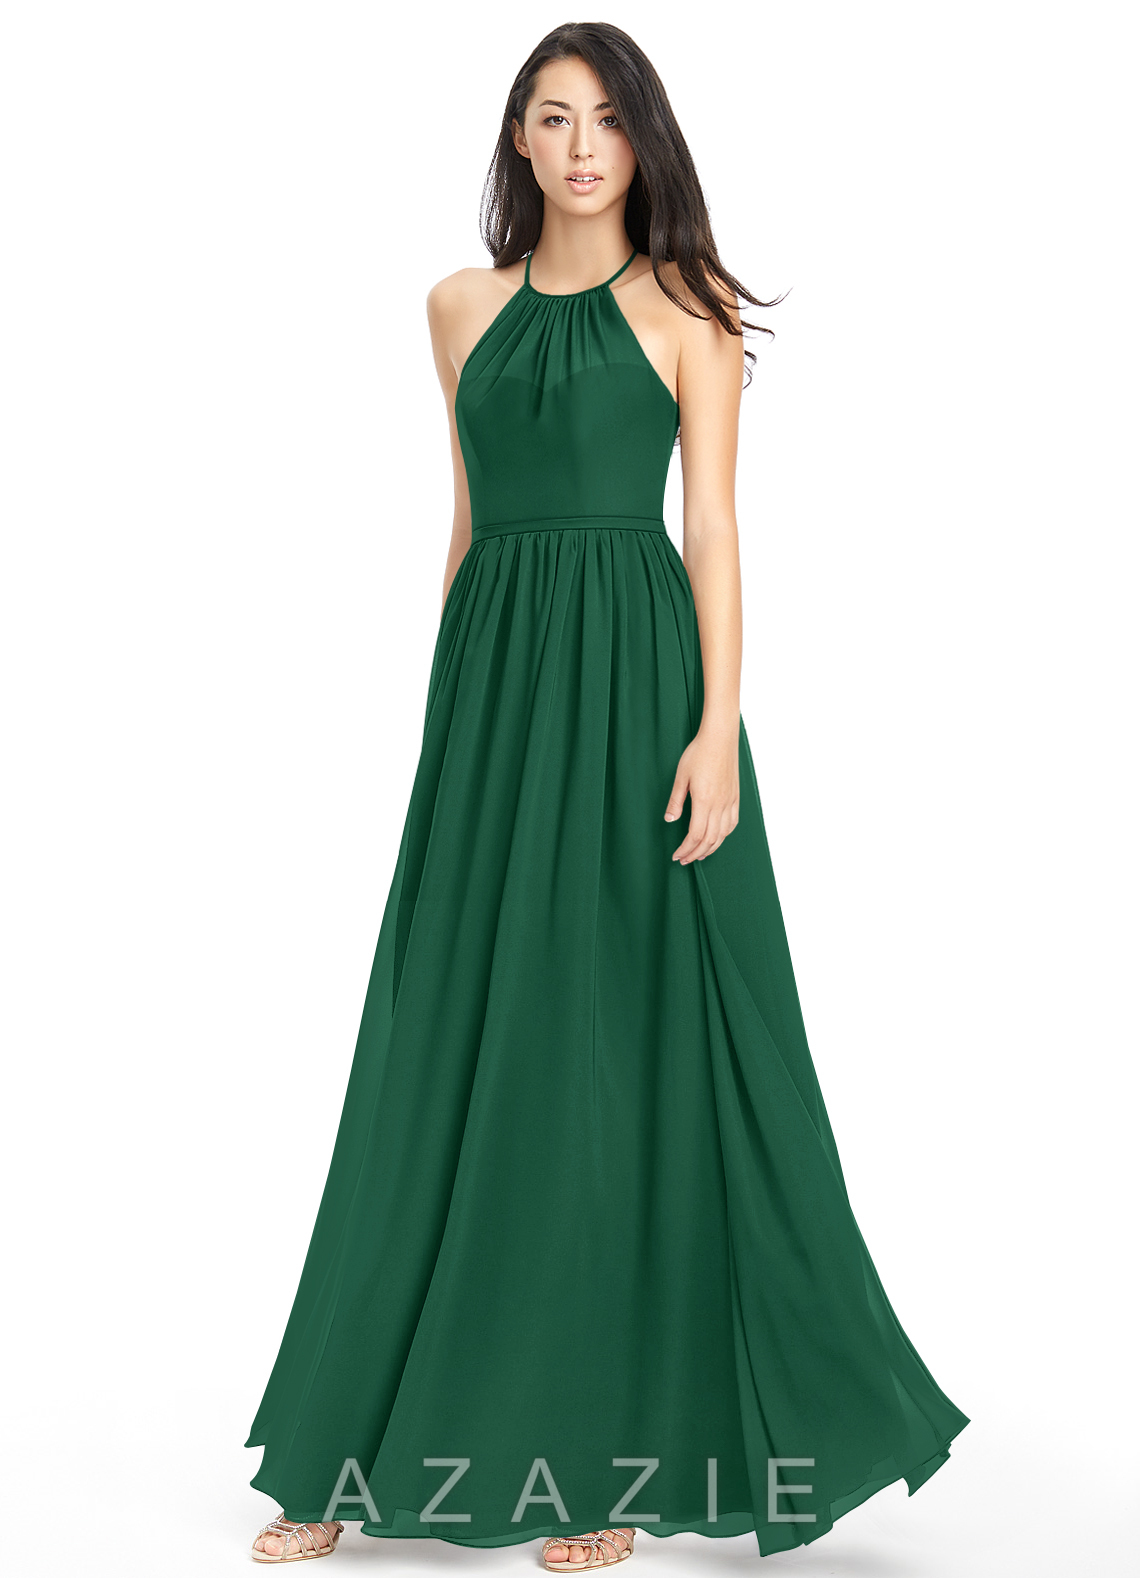 Azazie kailyn bridesmaid dress azazie color dark green ombrellifo Choice Image